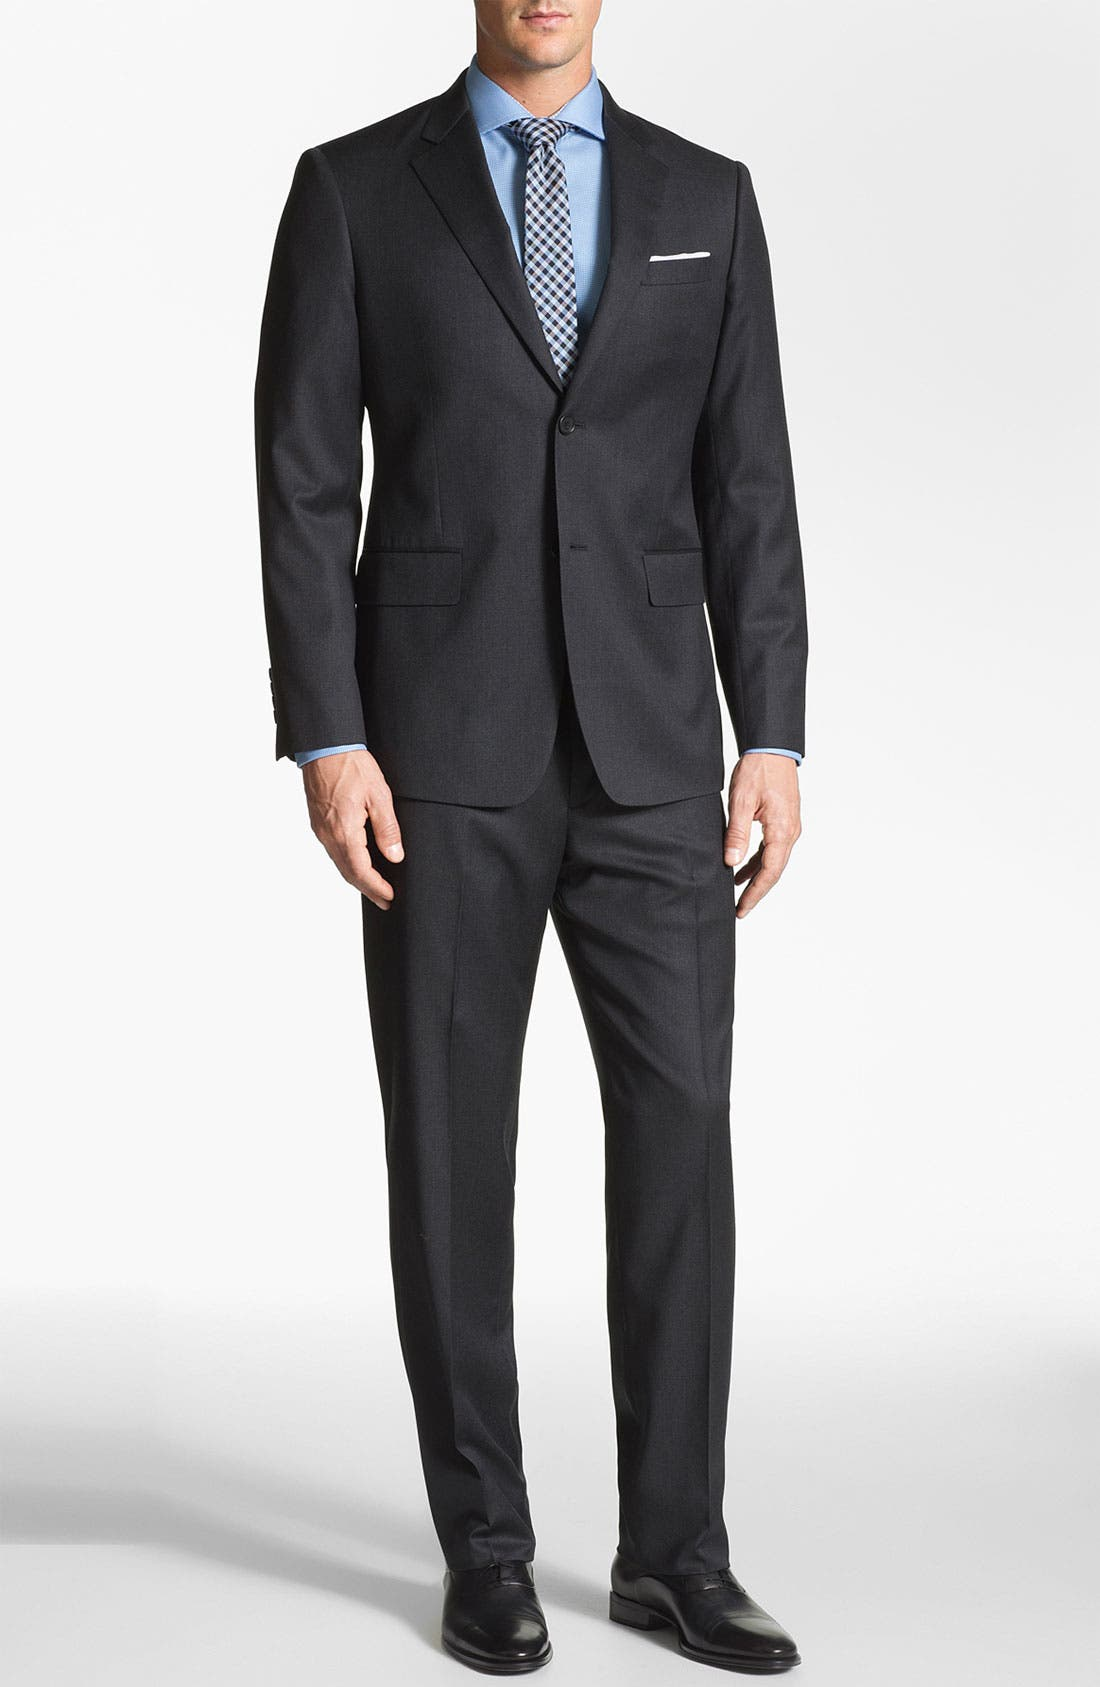 Alternate Image 1 Selected - John W. Nordstrom 'Travel' Classic Fit Wool Suit